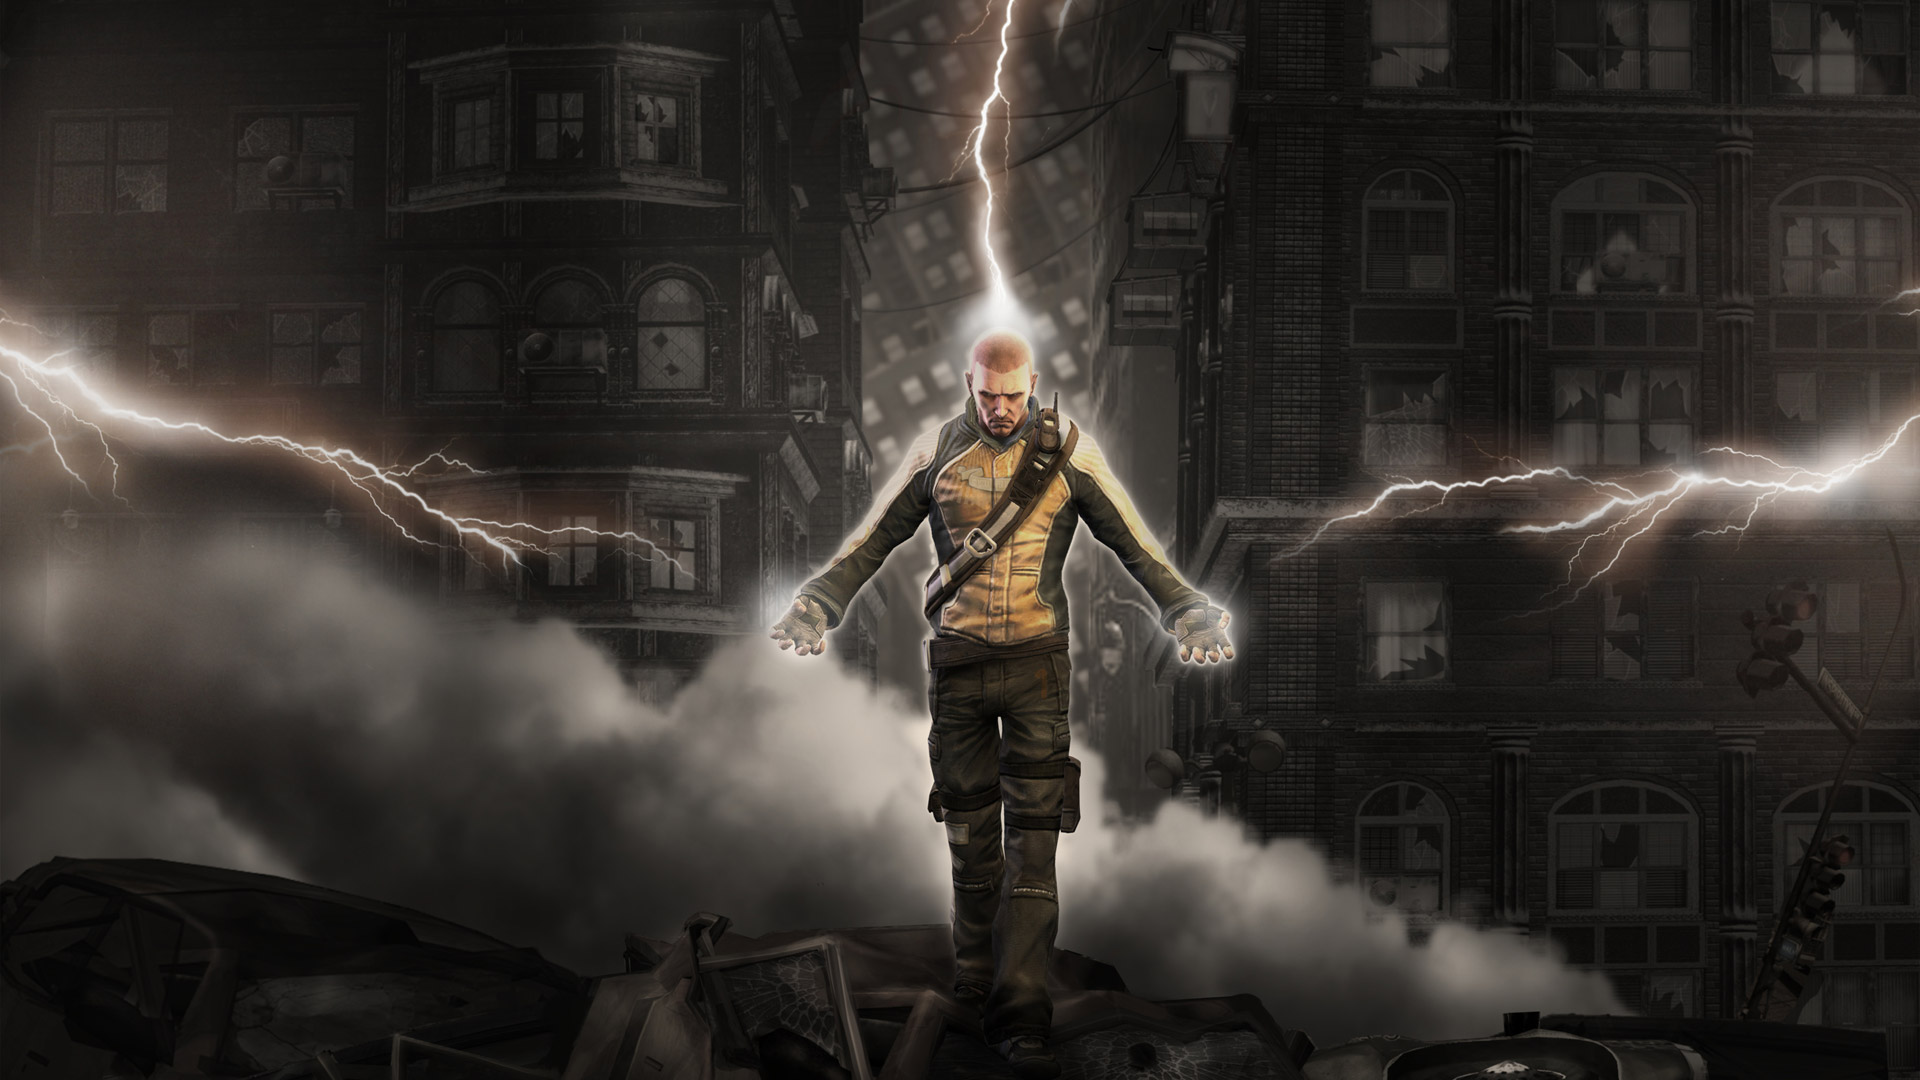 Free Infamous Wallpaper in 1920x1080